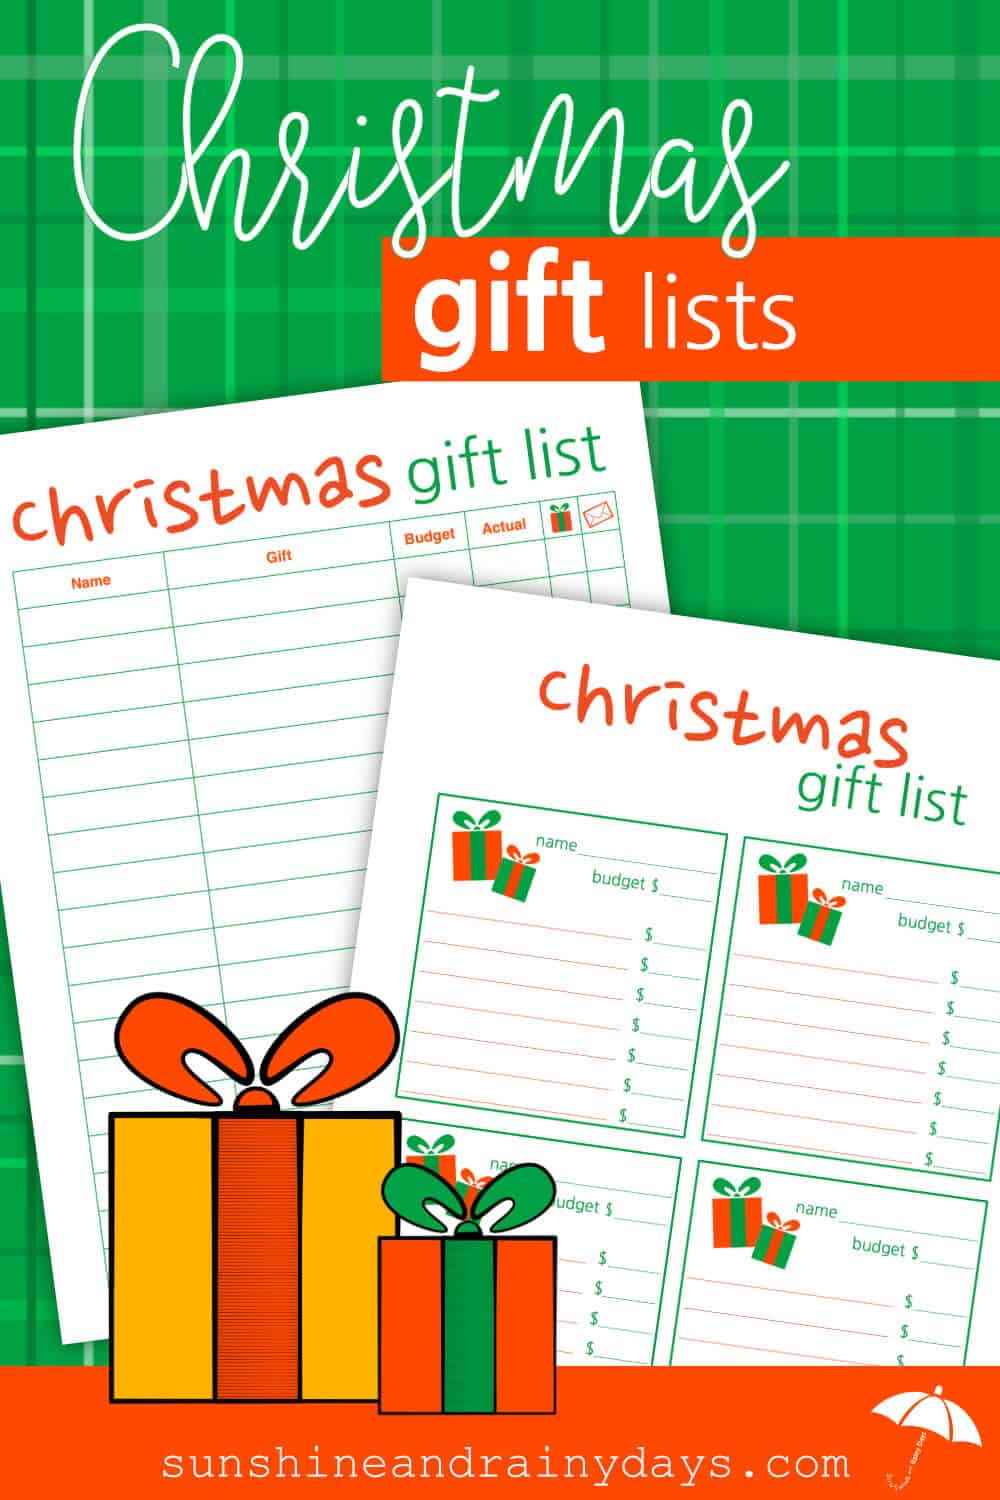 christmas gift list sunshine and rainy days